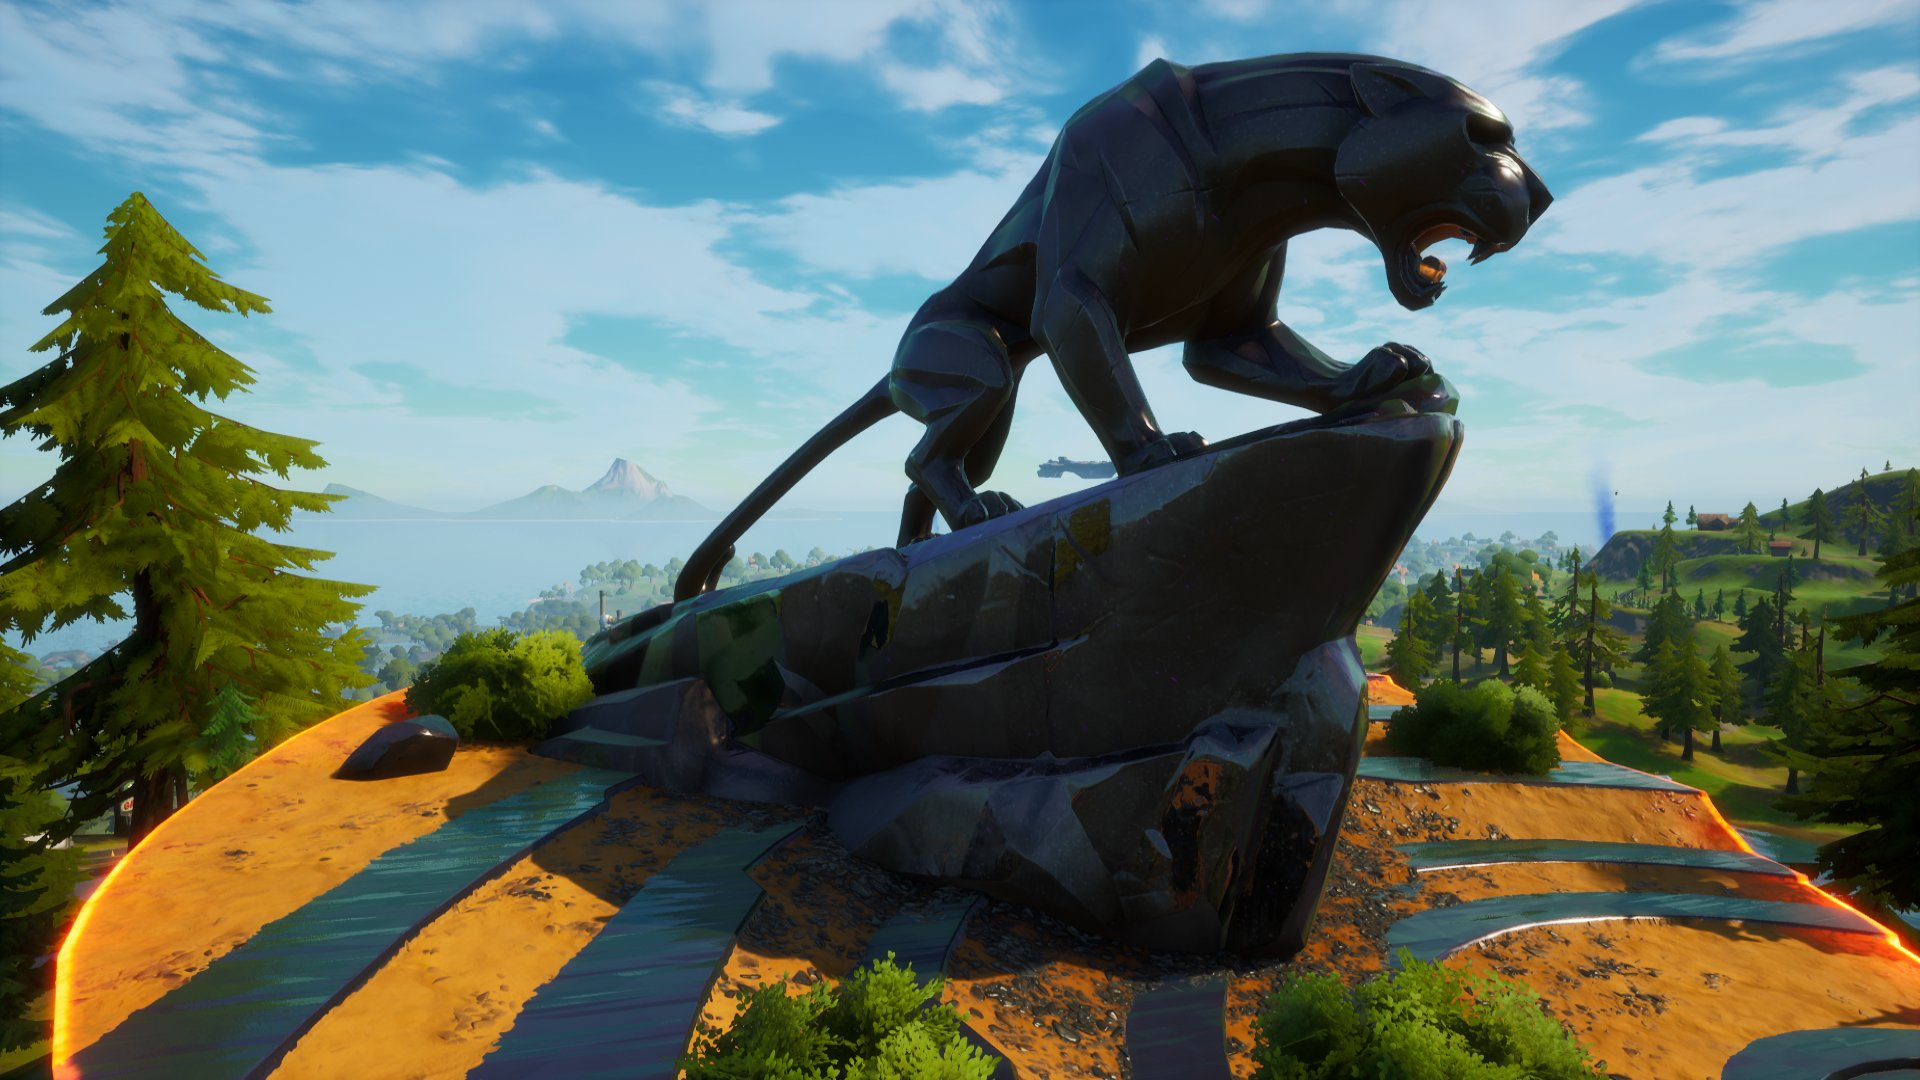 Fans are paying tribute to Chadwick Boseman at Fortnite's Panther's Prowl location